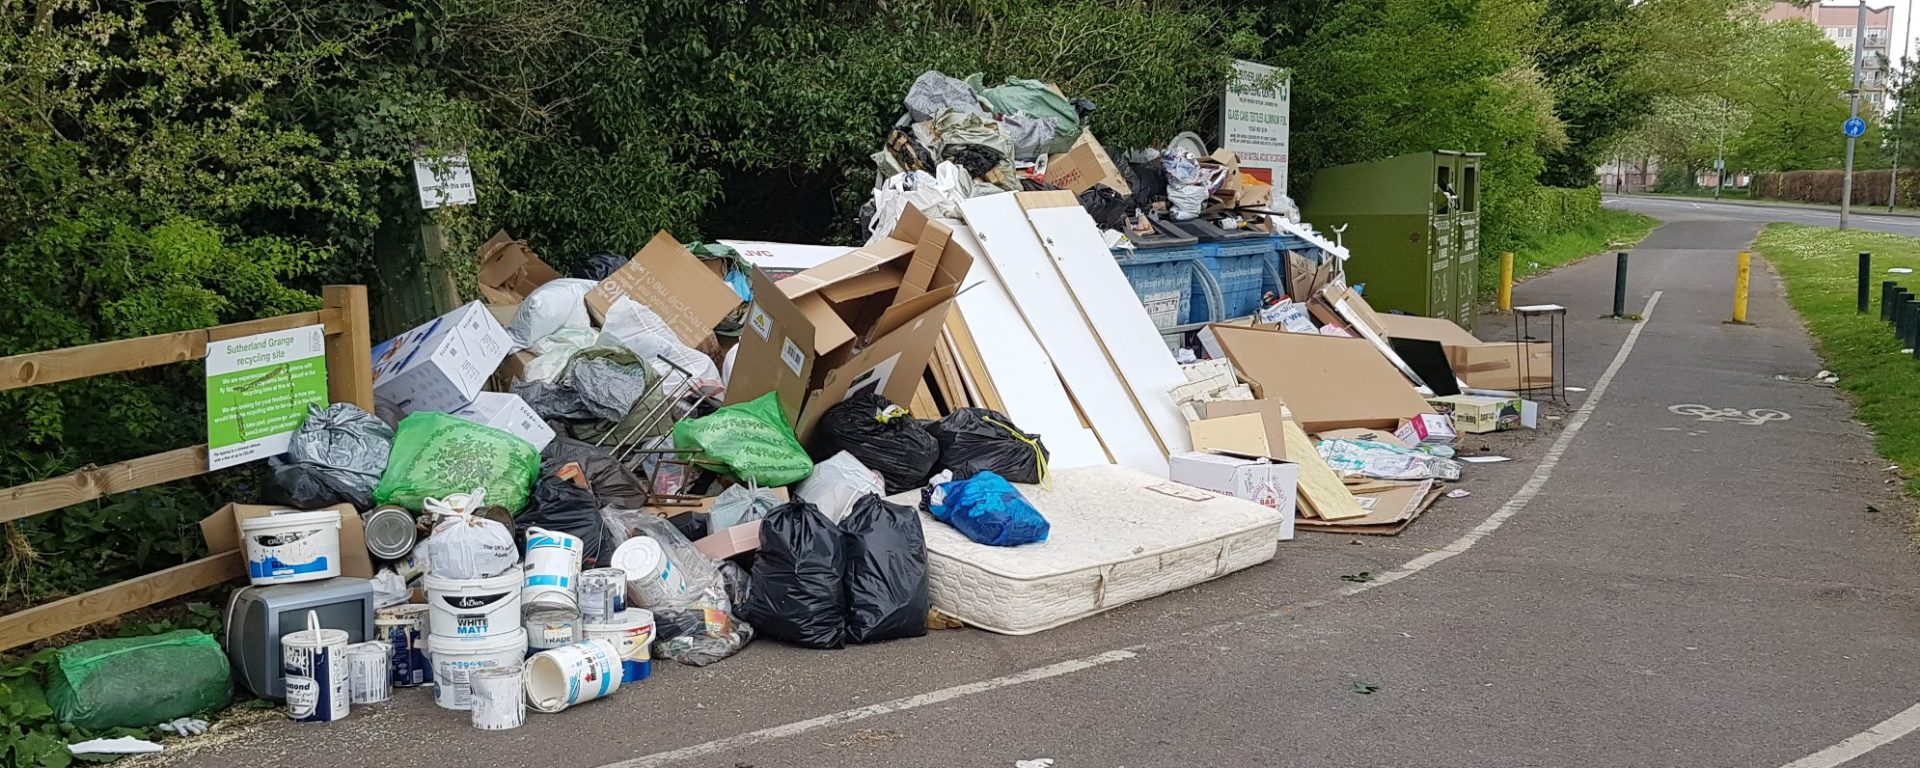 fly tipping sutherland grange covid-19